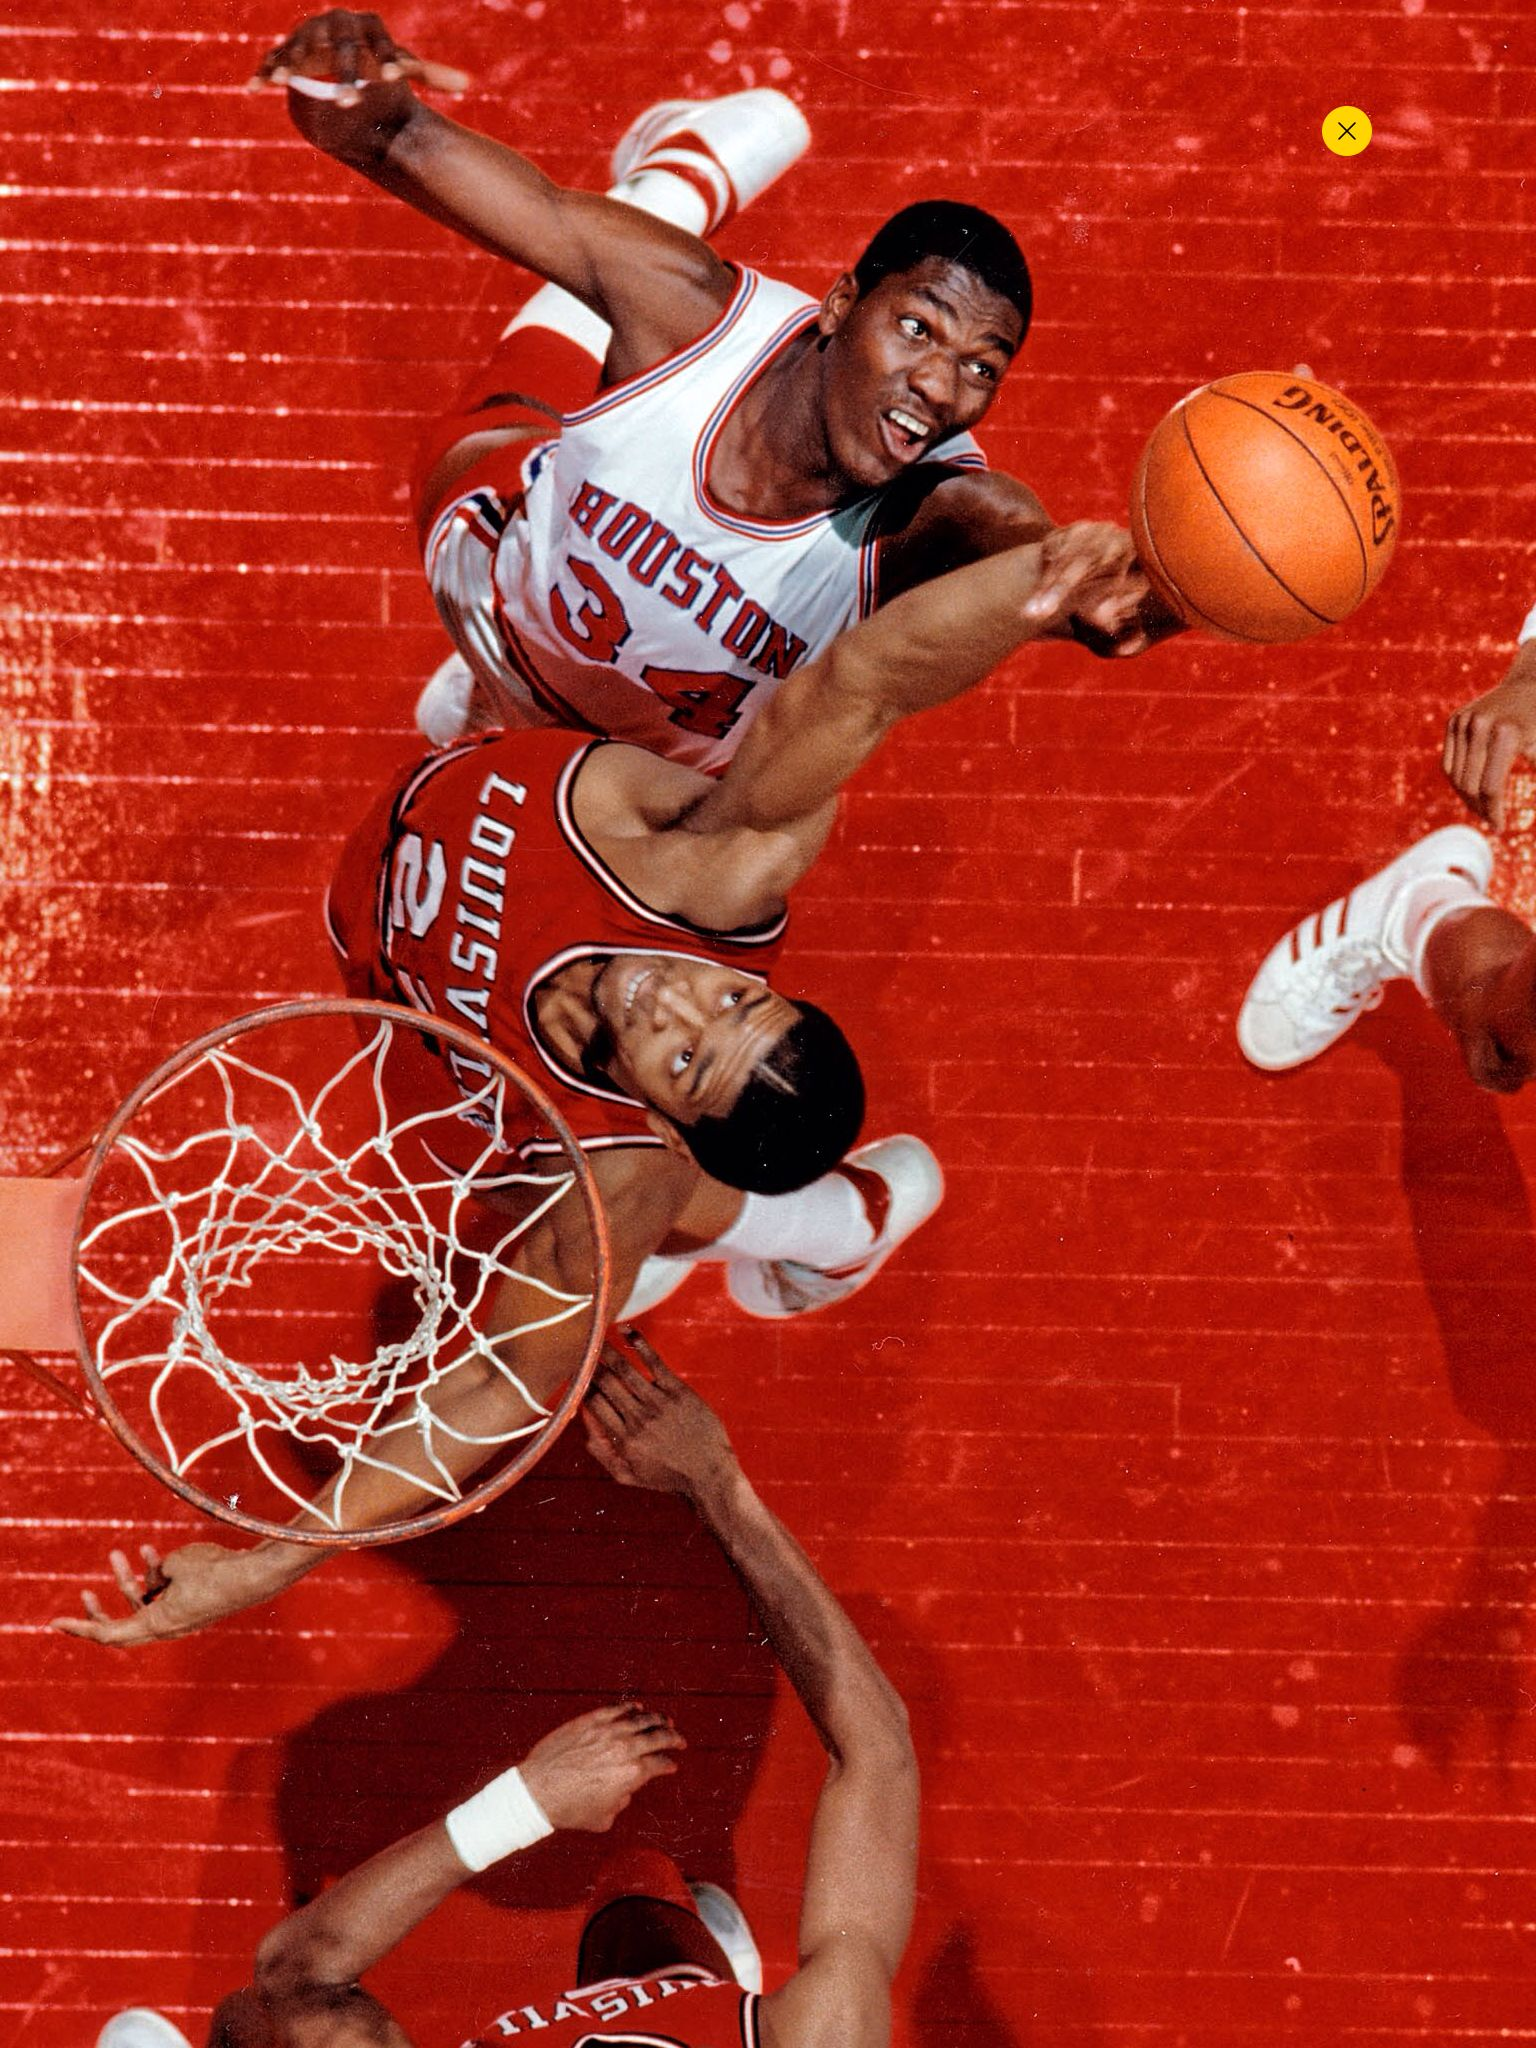 Akeem Olajuwon 34 and Louisville s Rodney McCray 22 from the